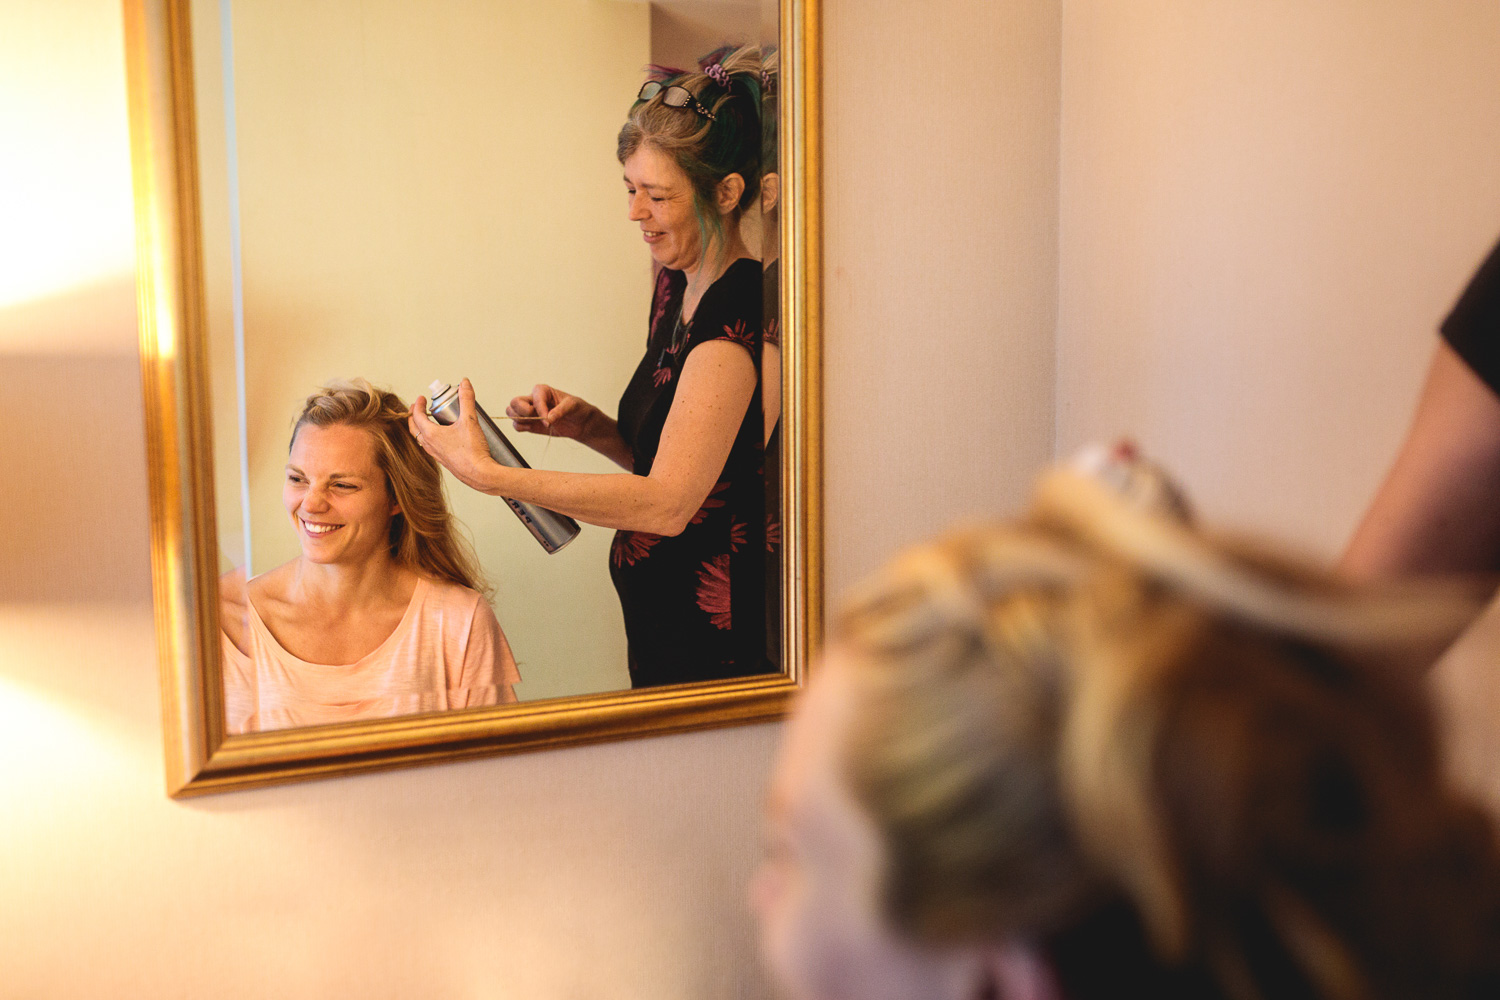 Bride in Sheffield having her hair platted by hairdresser with multicoloured hair and laughing